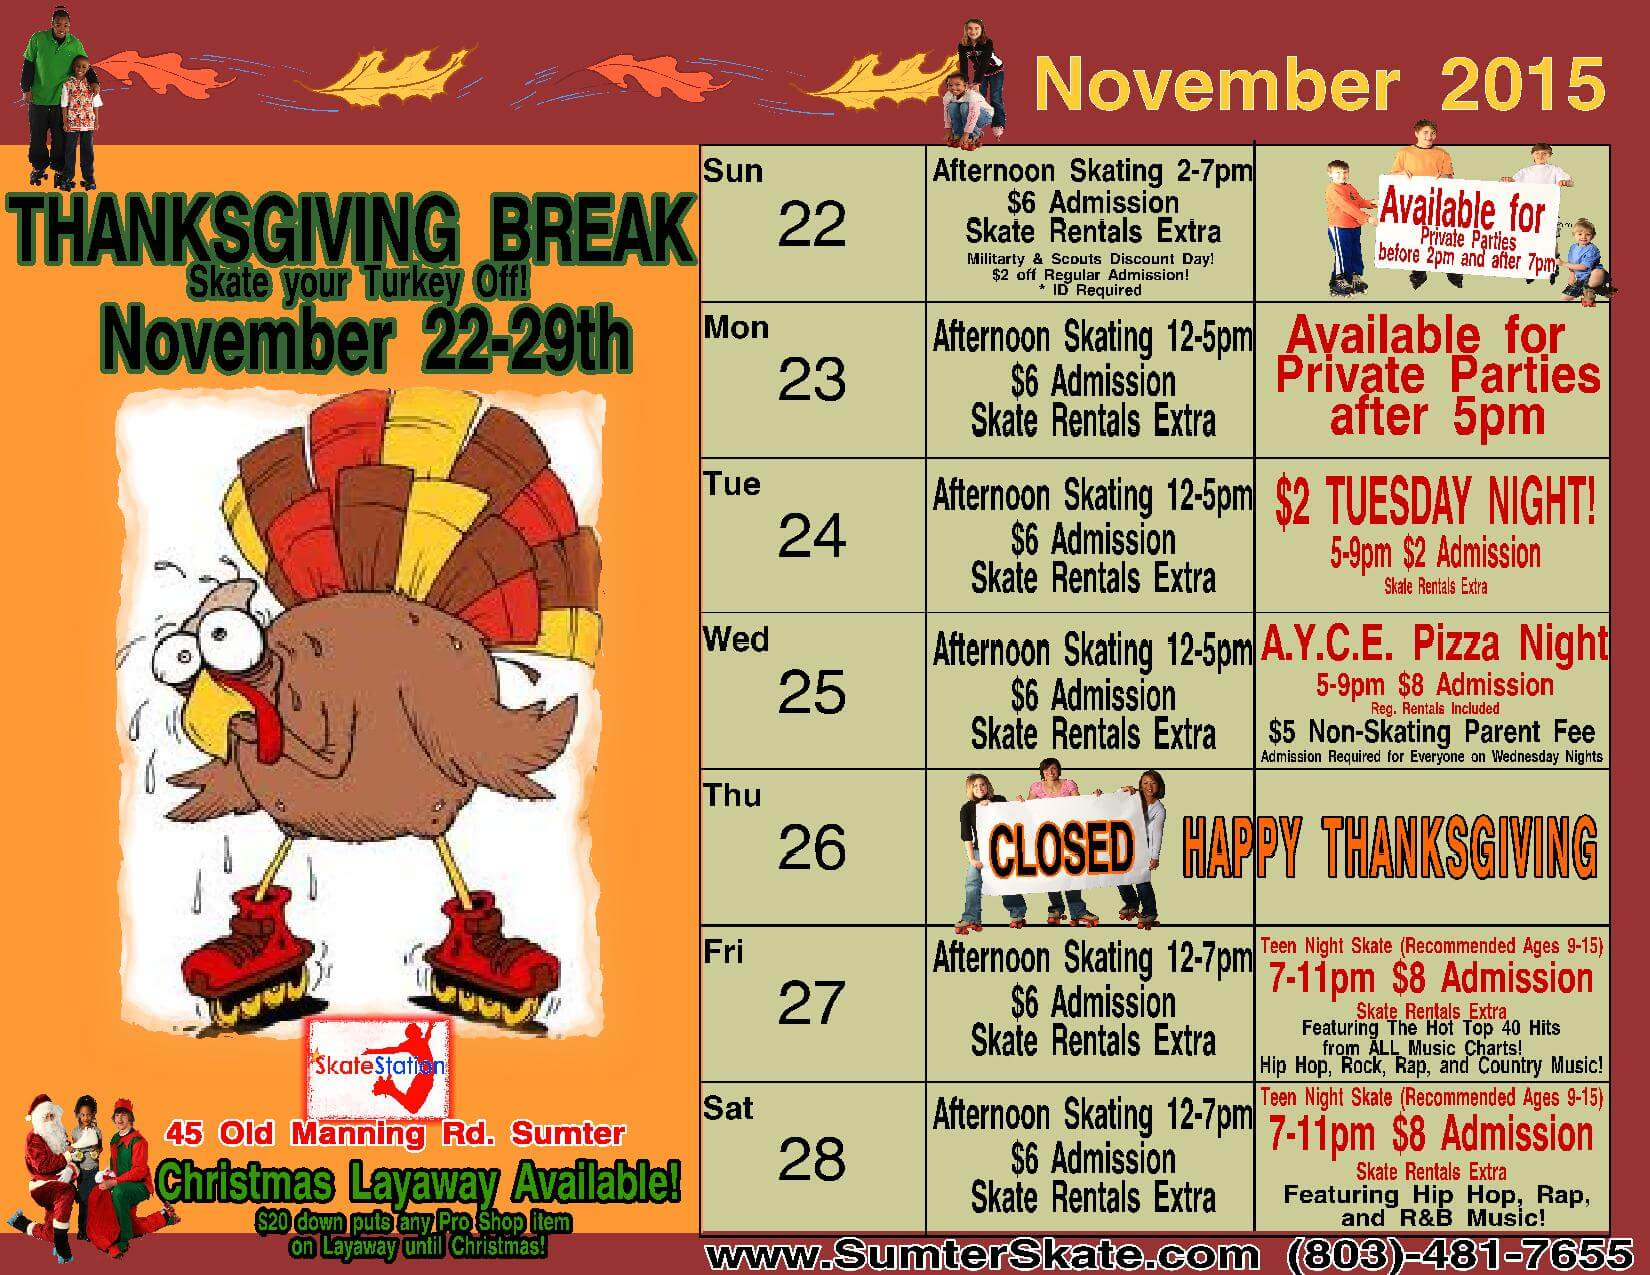 Thanksgiving dates 2015